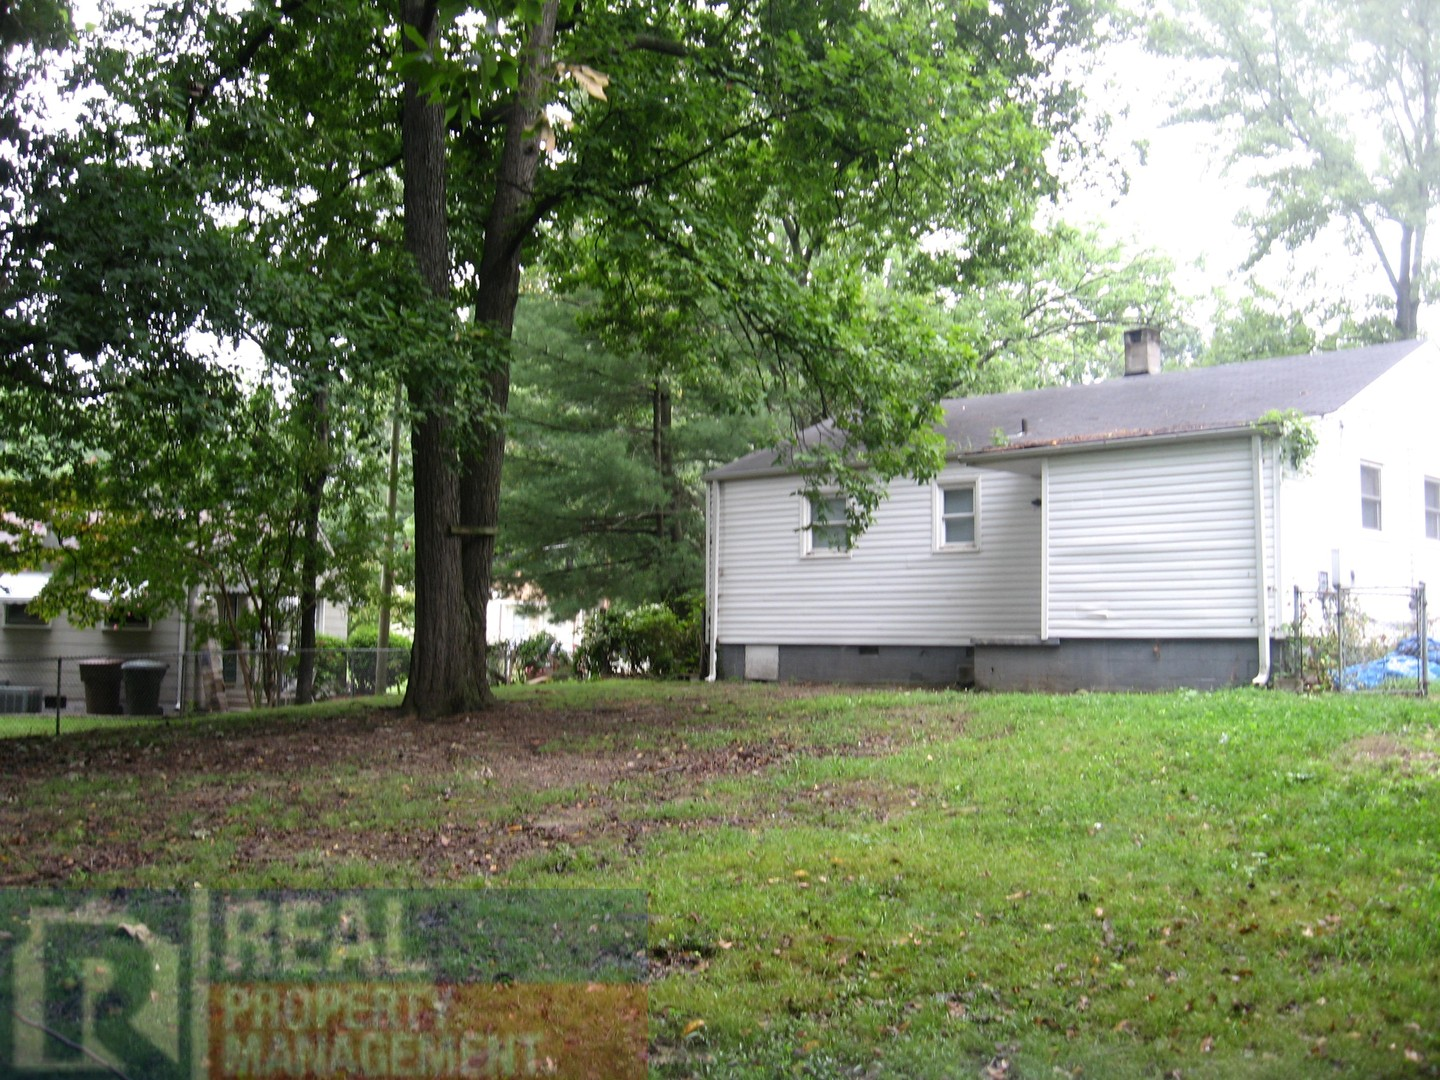 2607 Wildwood Dr Greensboro Nc 27407 Rental Listing Real Property Management Of The Triad